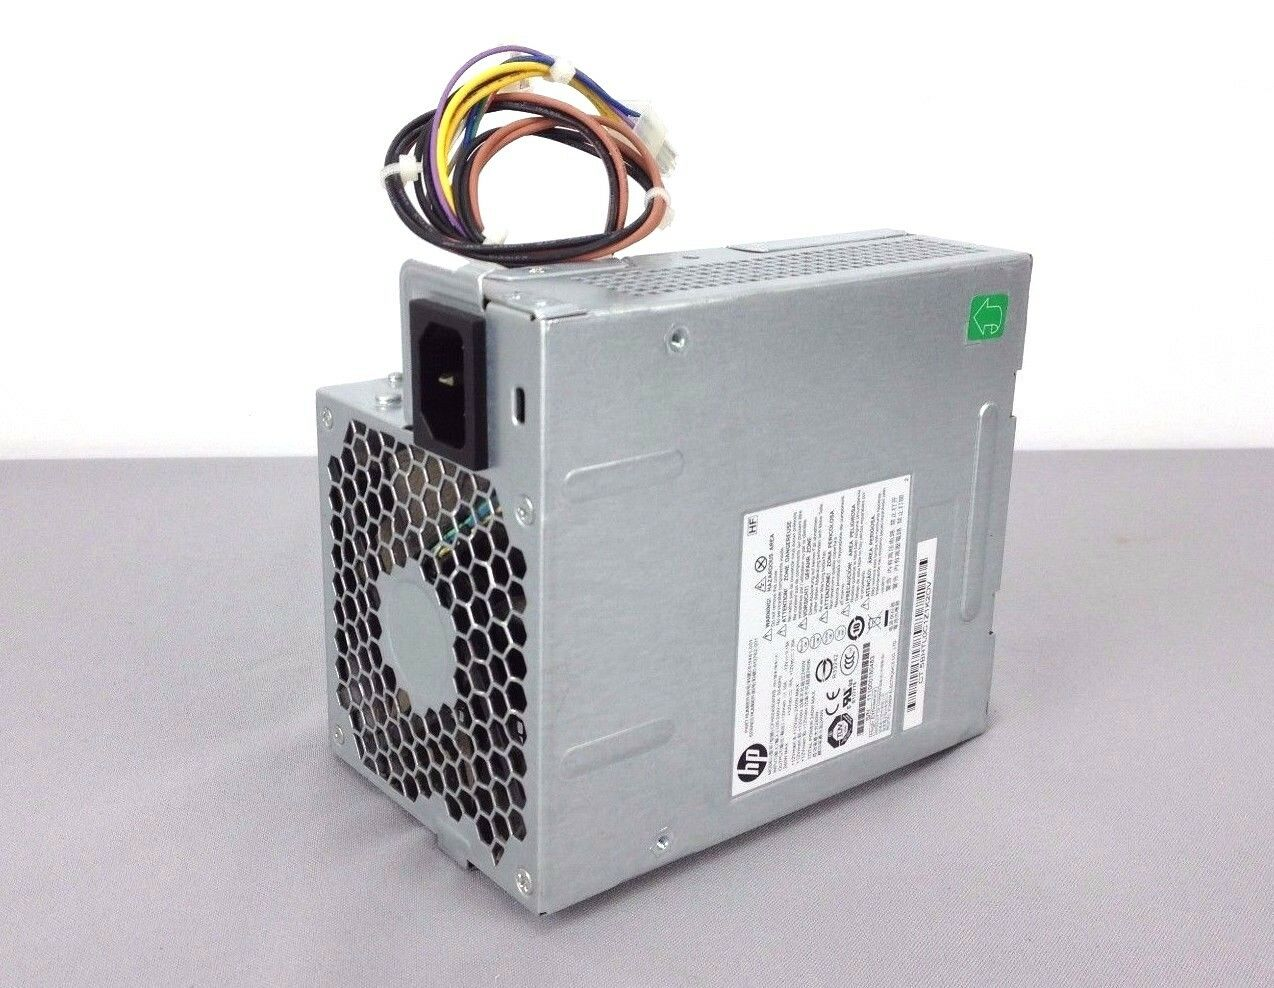 Hp 240w Power Supply Psu For Pro 6000 6005 6200 Elite 8000 8200 Enermax Revolution 87 Modular 850w Erv850ewt G 1 Di 5 Vedi Altro